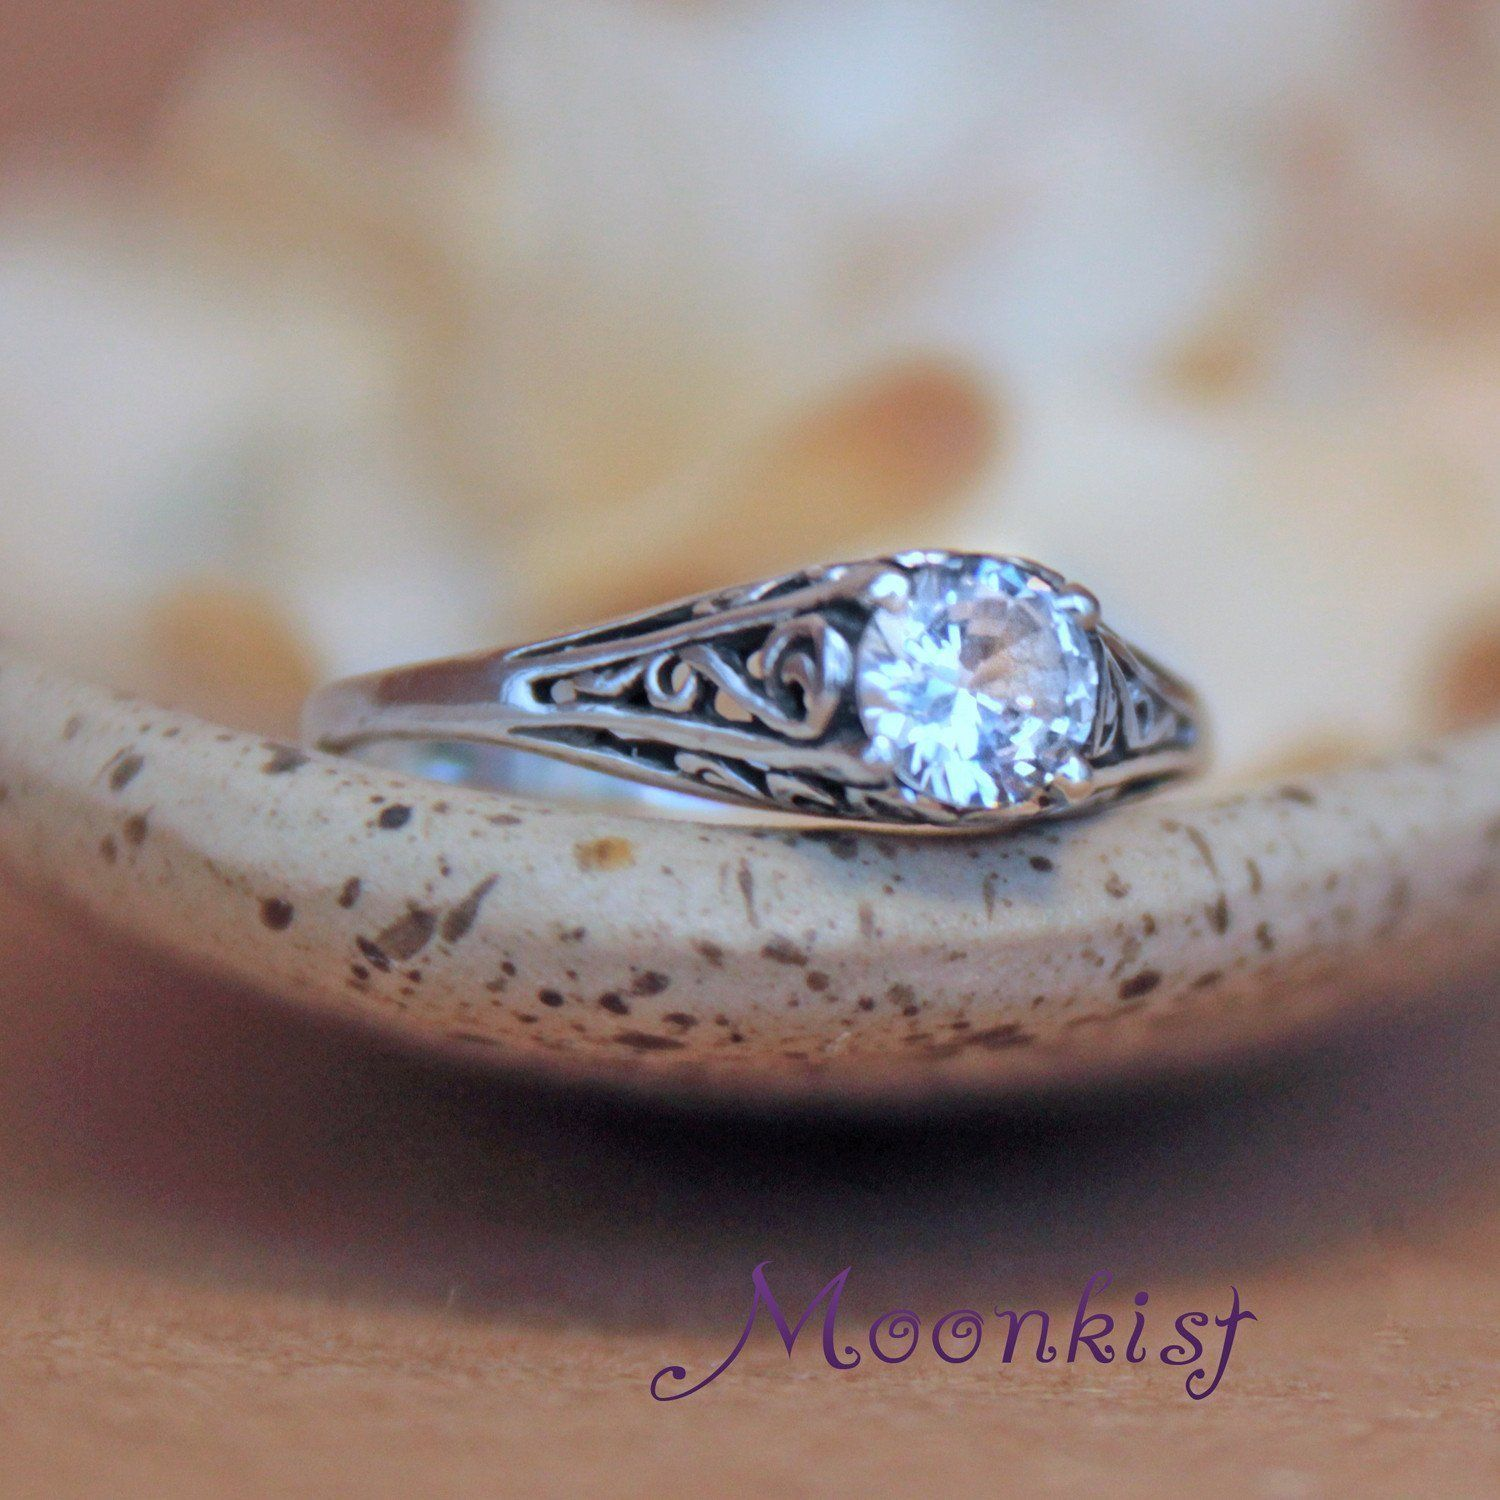 Vintage Style White Shire Dainty Filigree Silver Bridal Engagement Ring